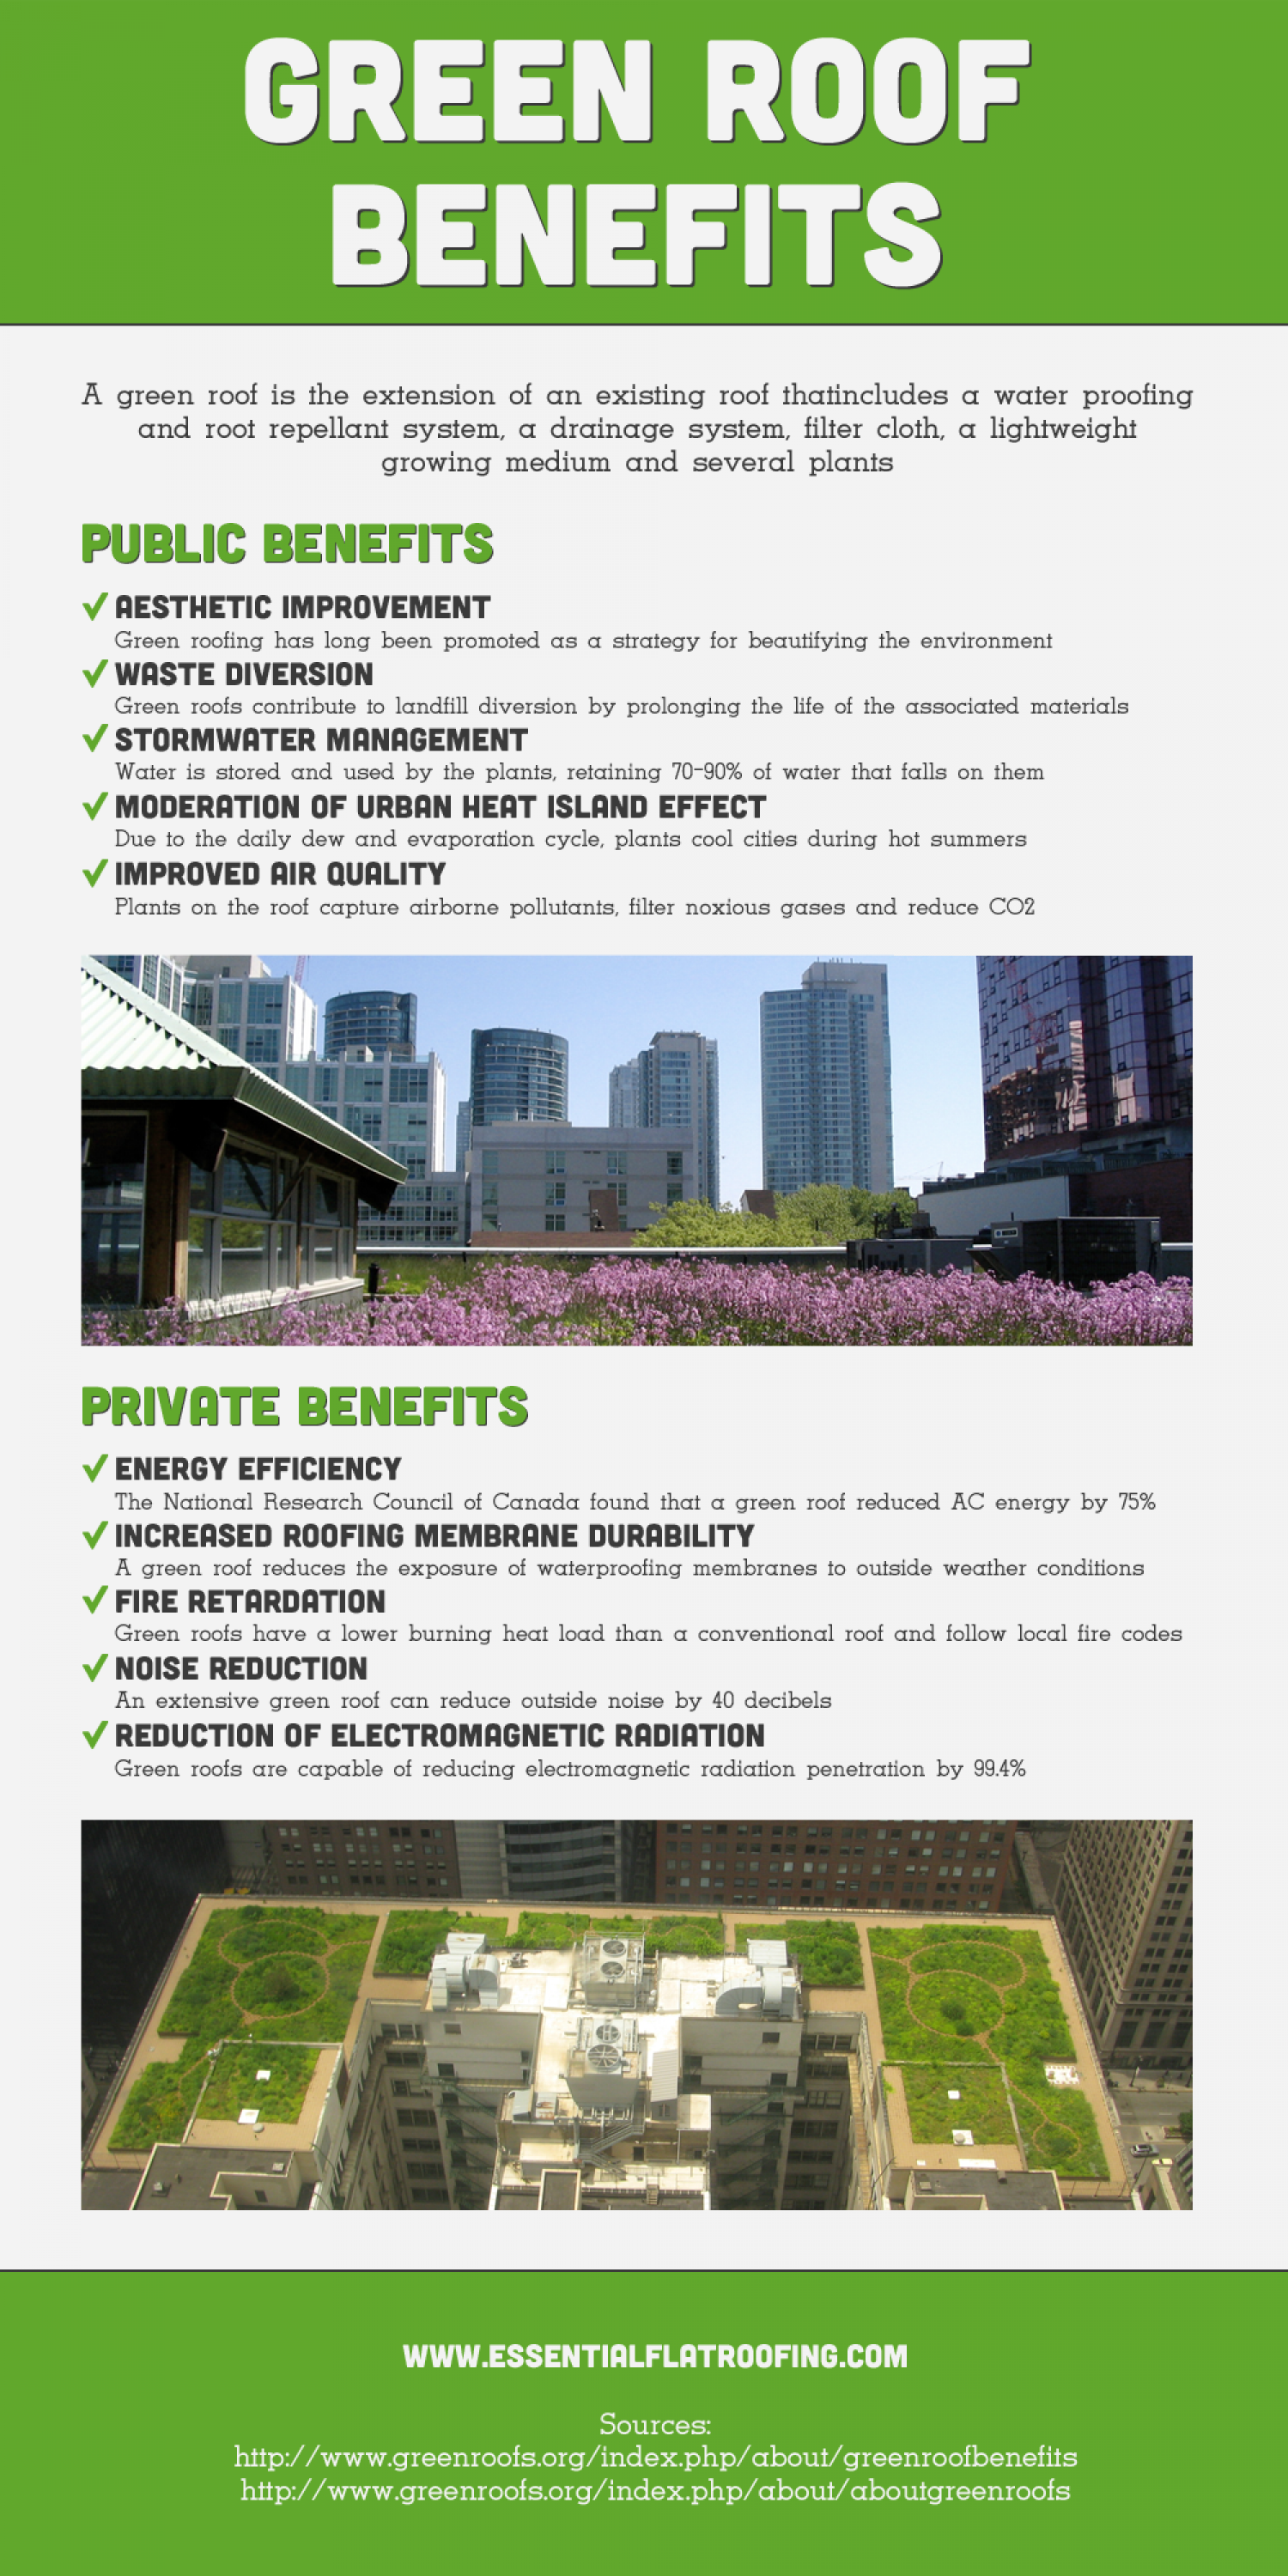 The Benefits of Green Roofing Infographic